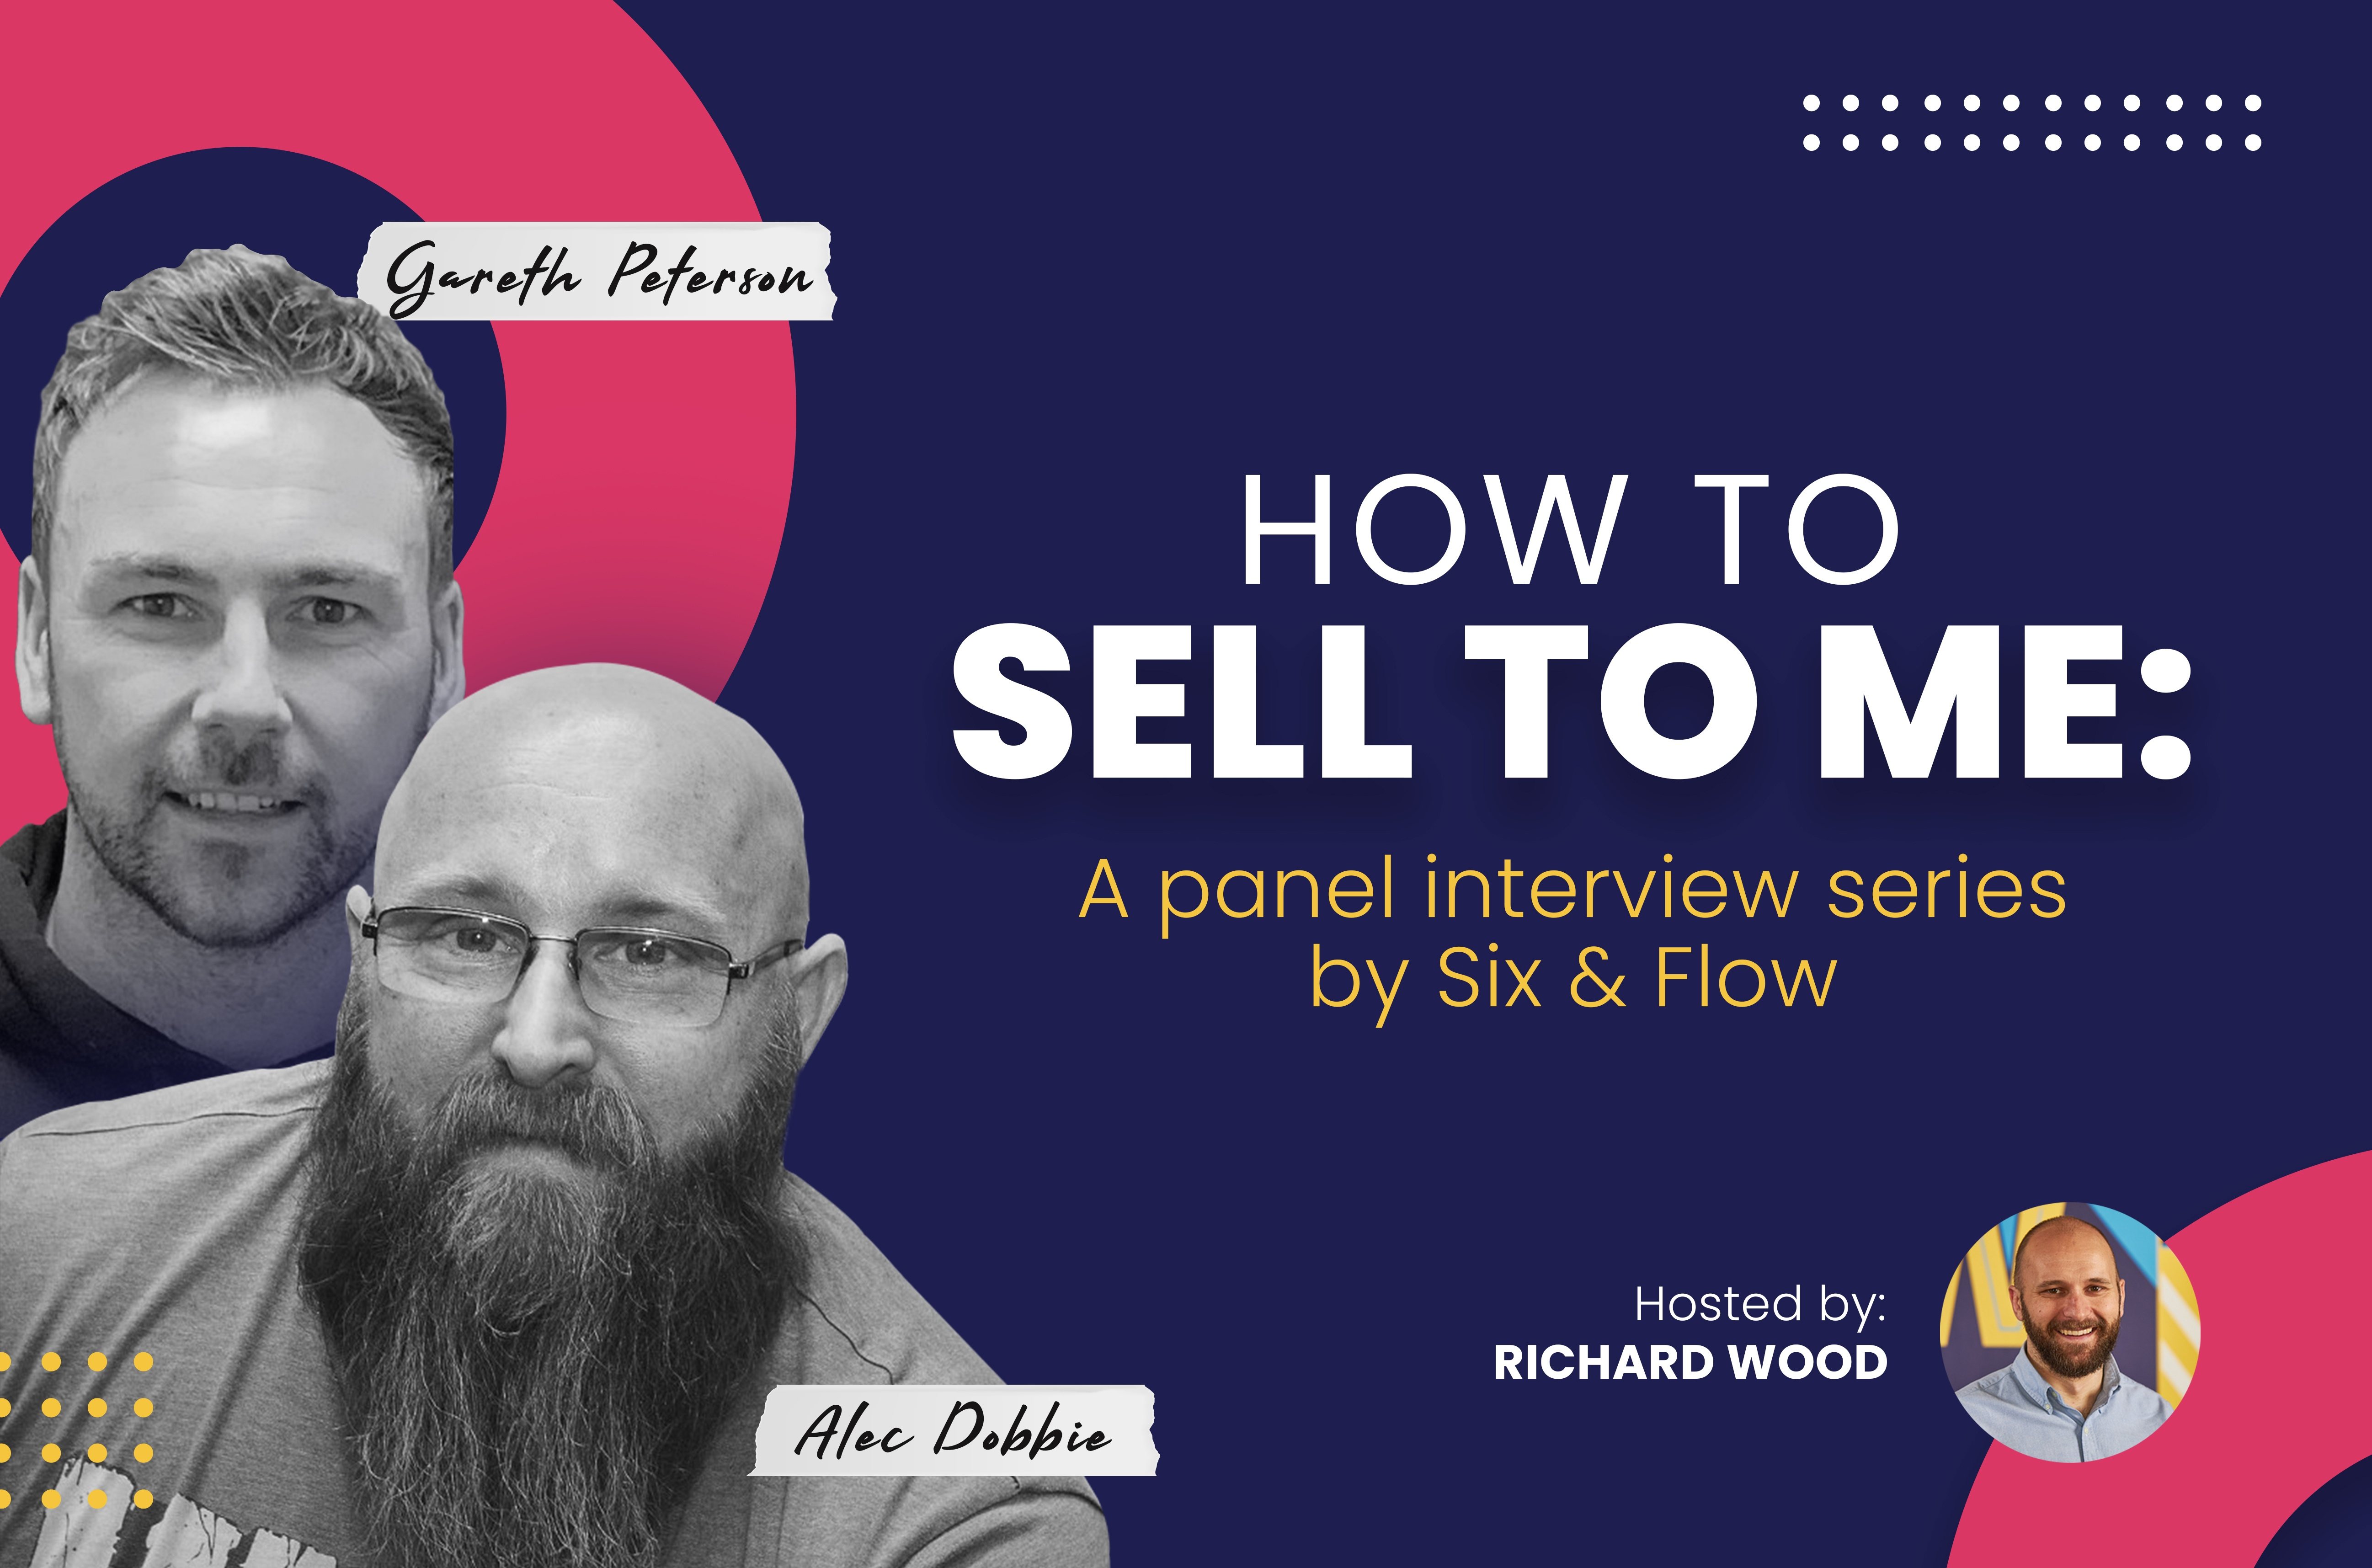 How to Sell to Me: Featured Caroo and Fanfinders